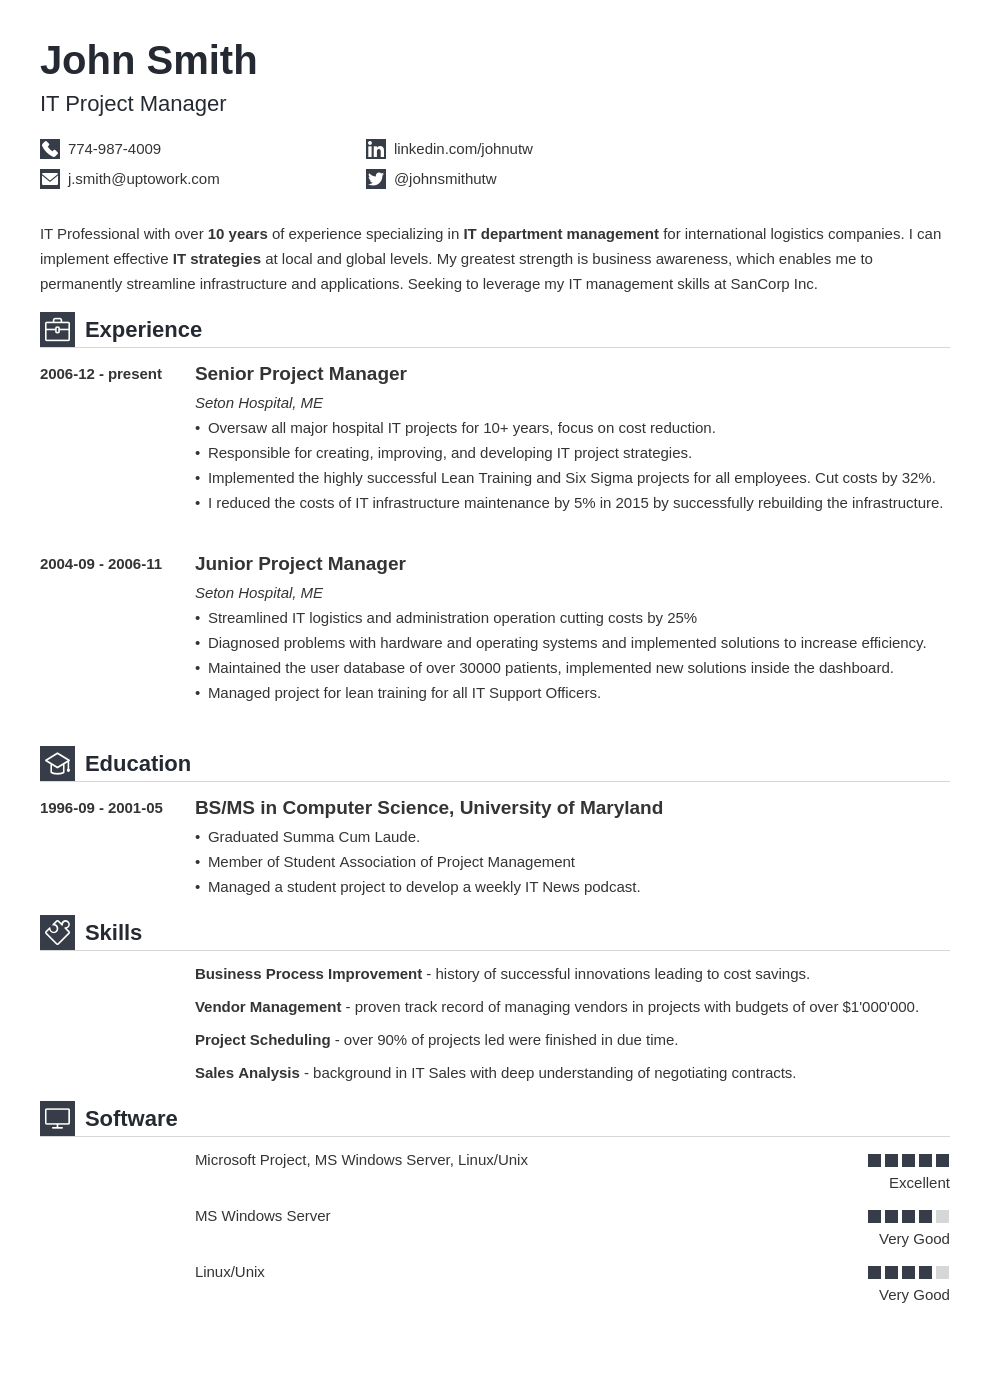 Charming Professional Resume Template Iconic Idea Resume Tempate